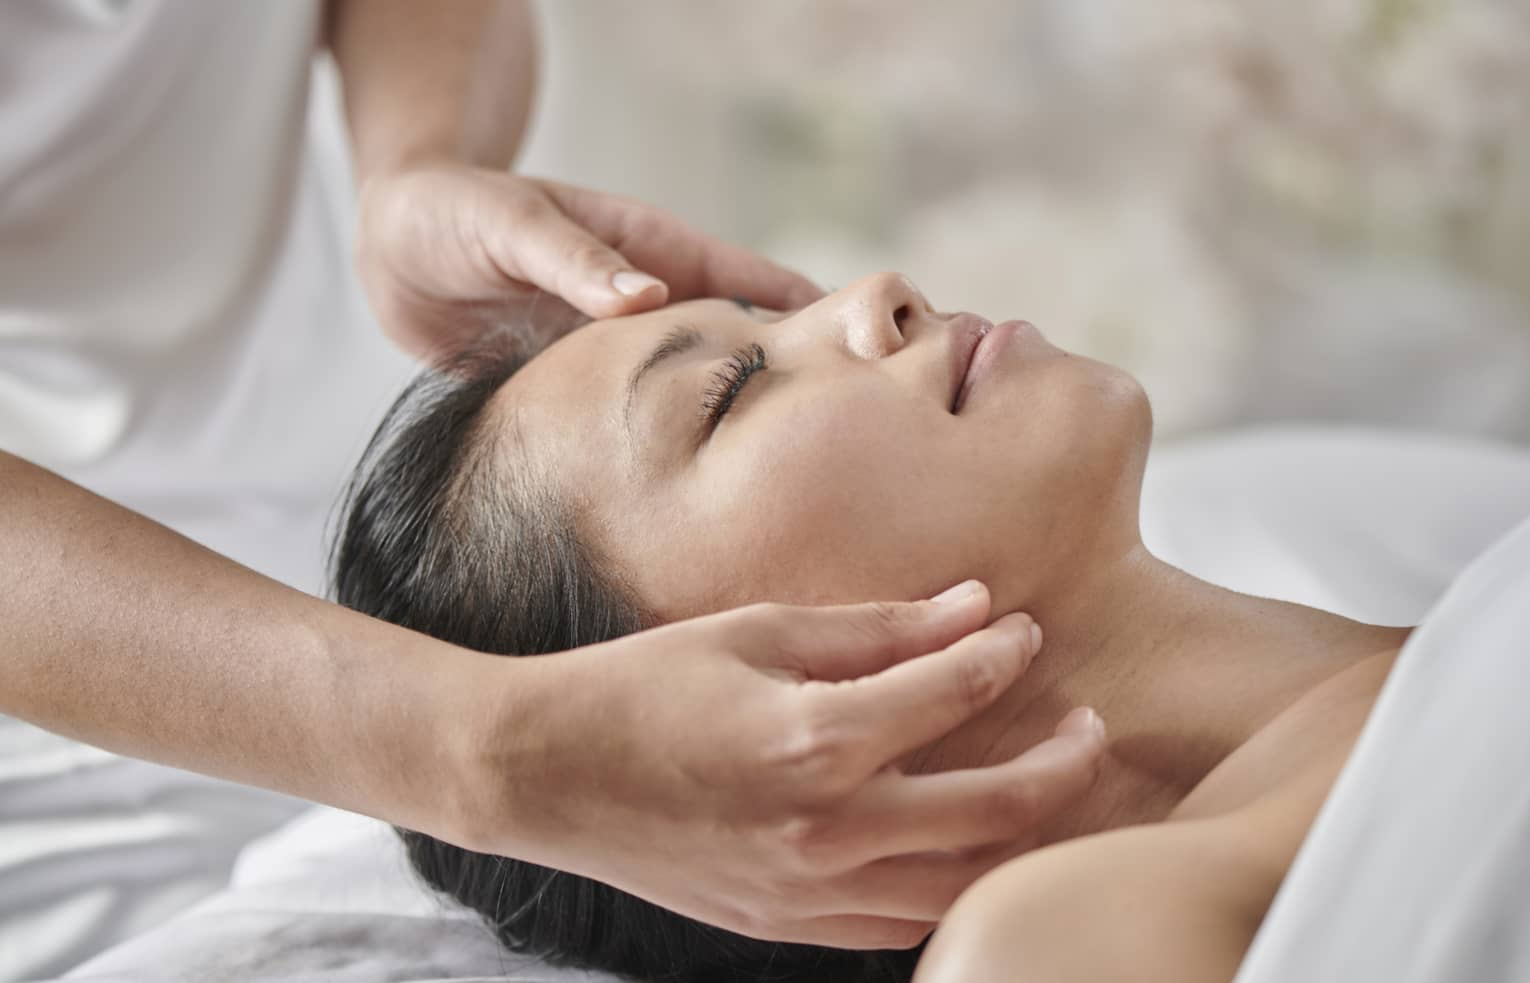 Masseuse massages woman's face as she lies face up on table under white sheet